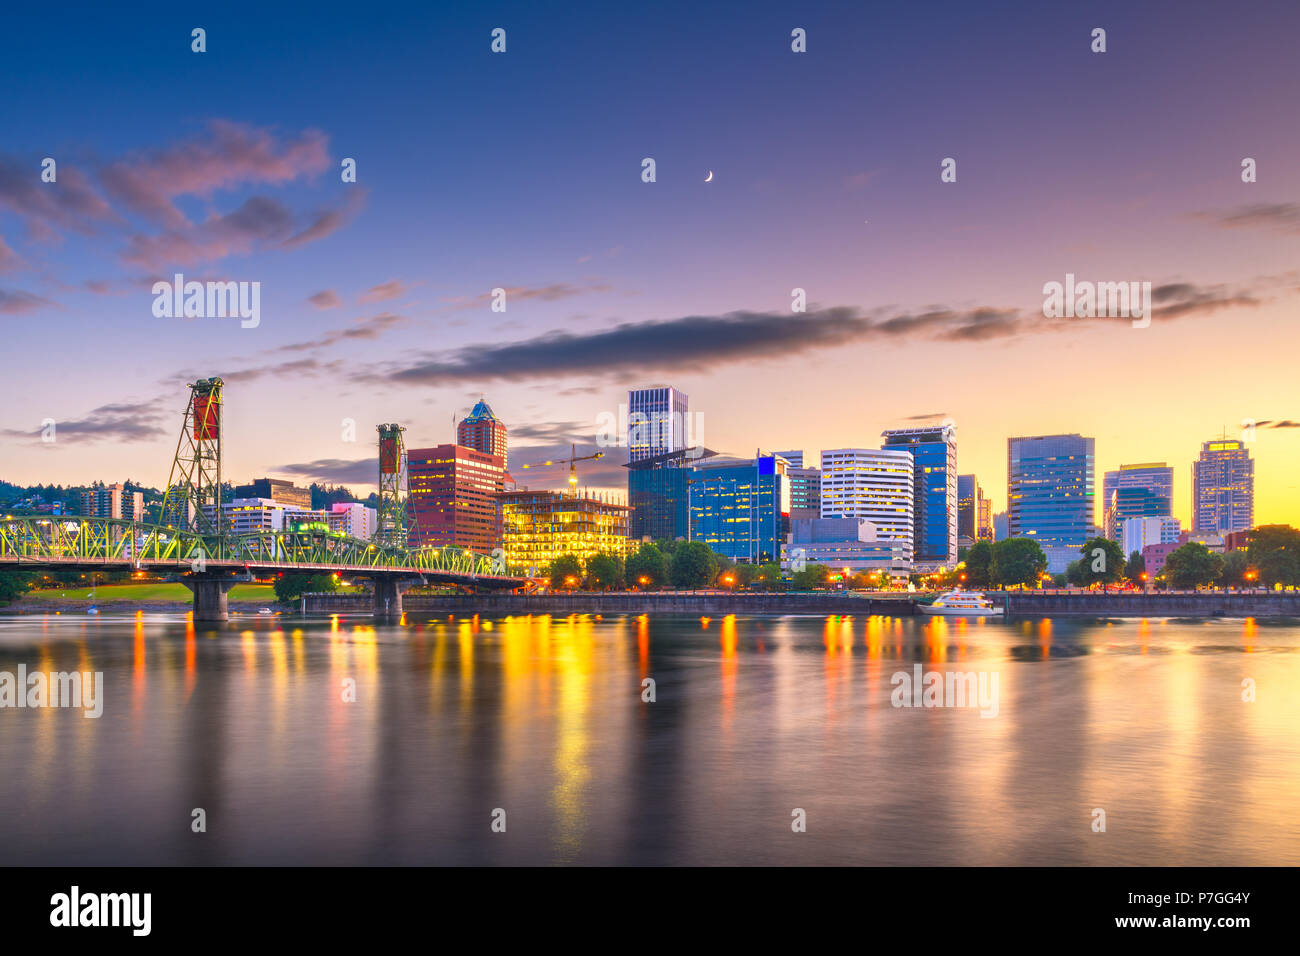 Portland, Oregon, USA skyline at dusk on the Willamette River. - Stock Image